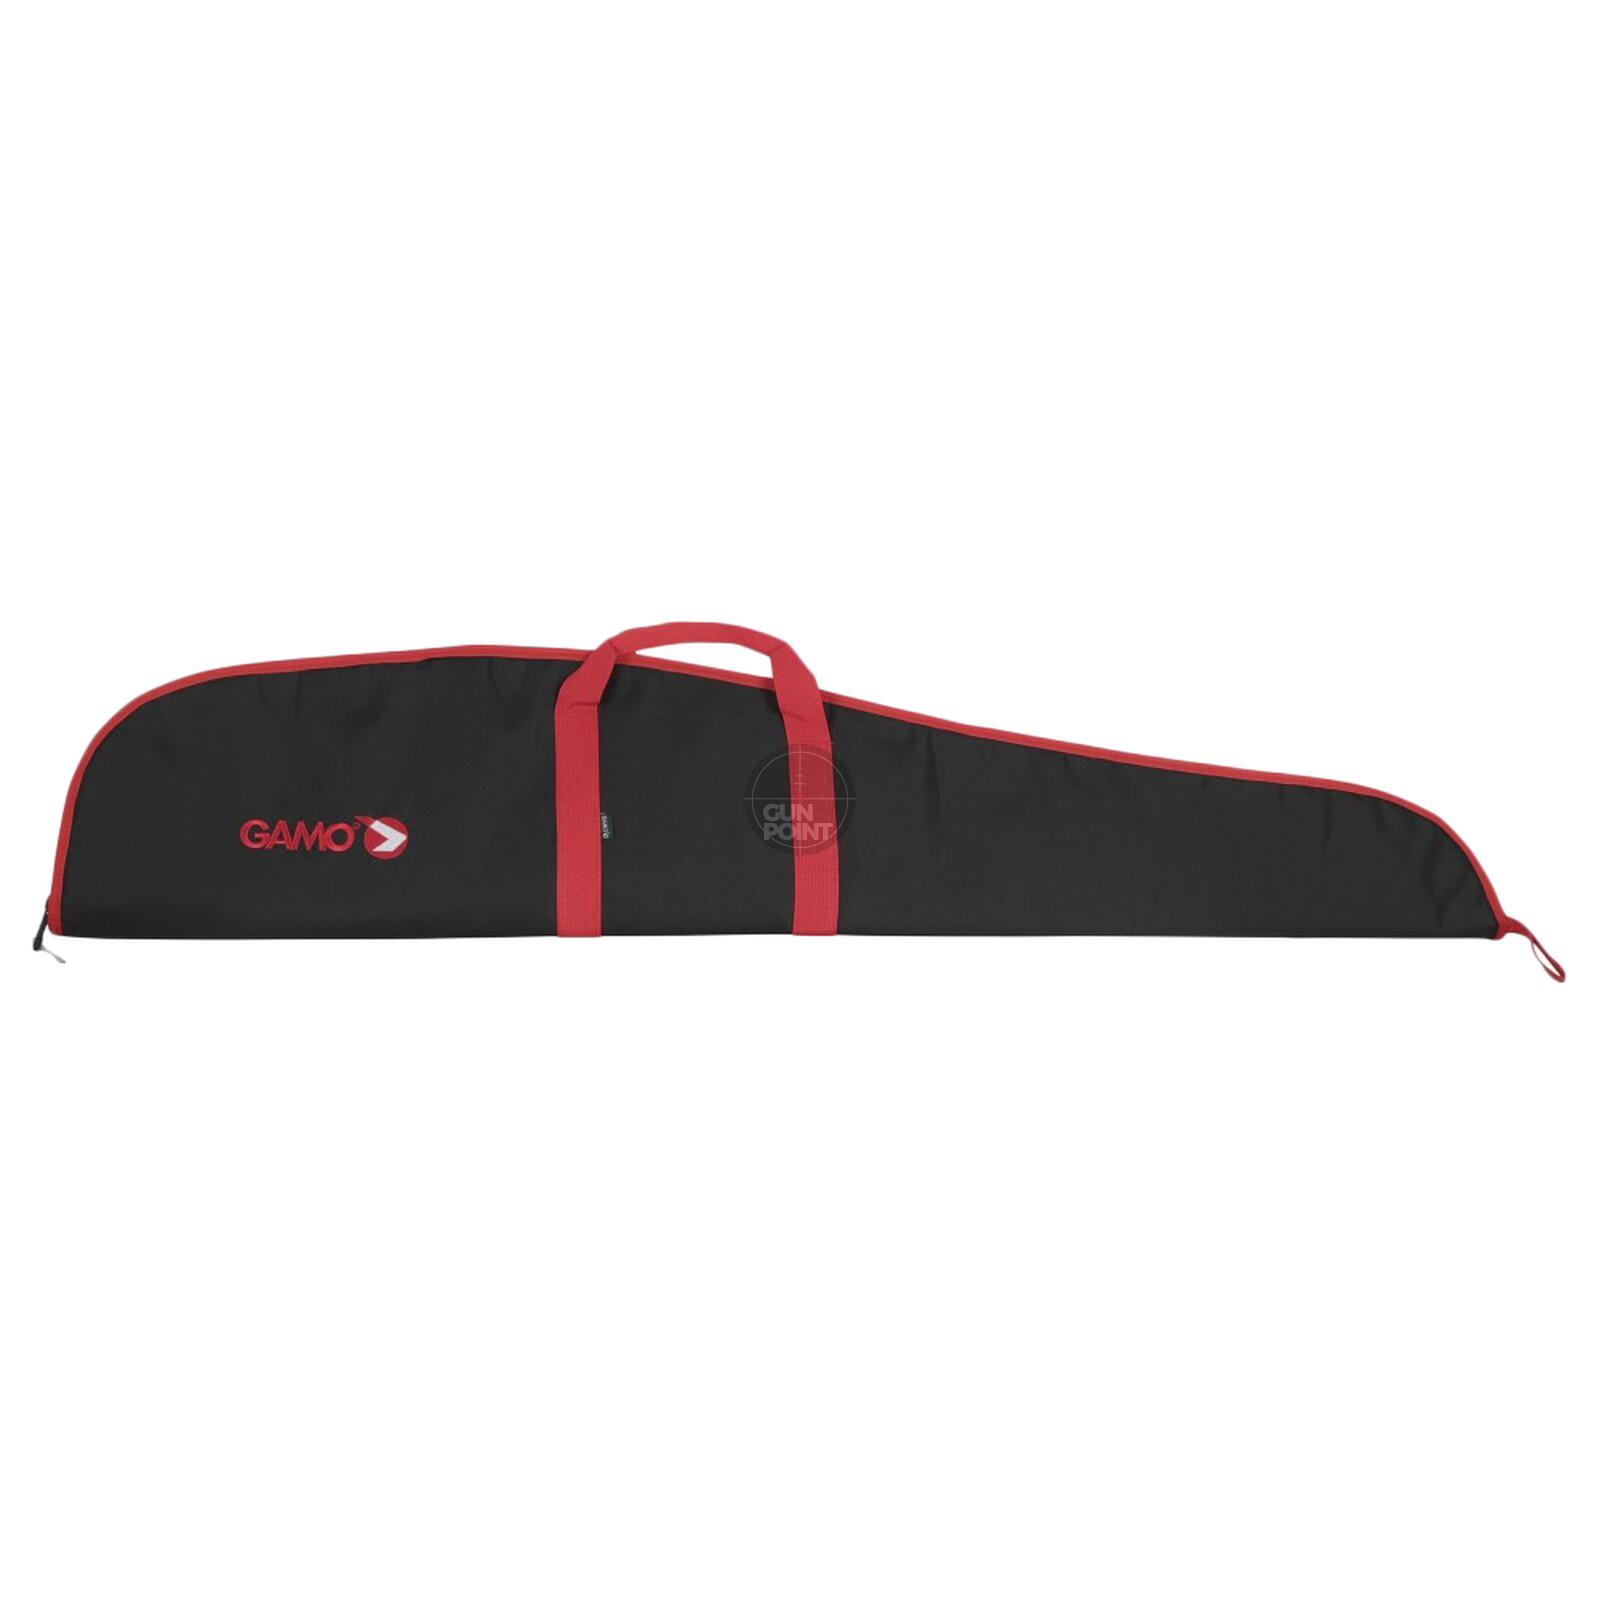 Gewehrtasche - Gamo - Gun Cover Black and Red - 120 cm